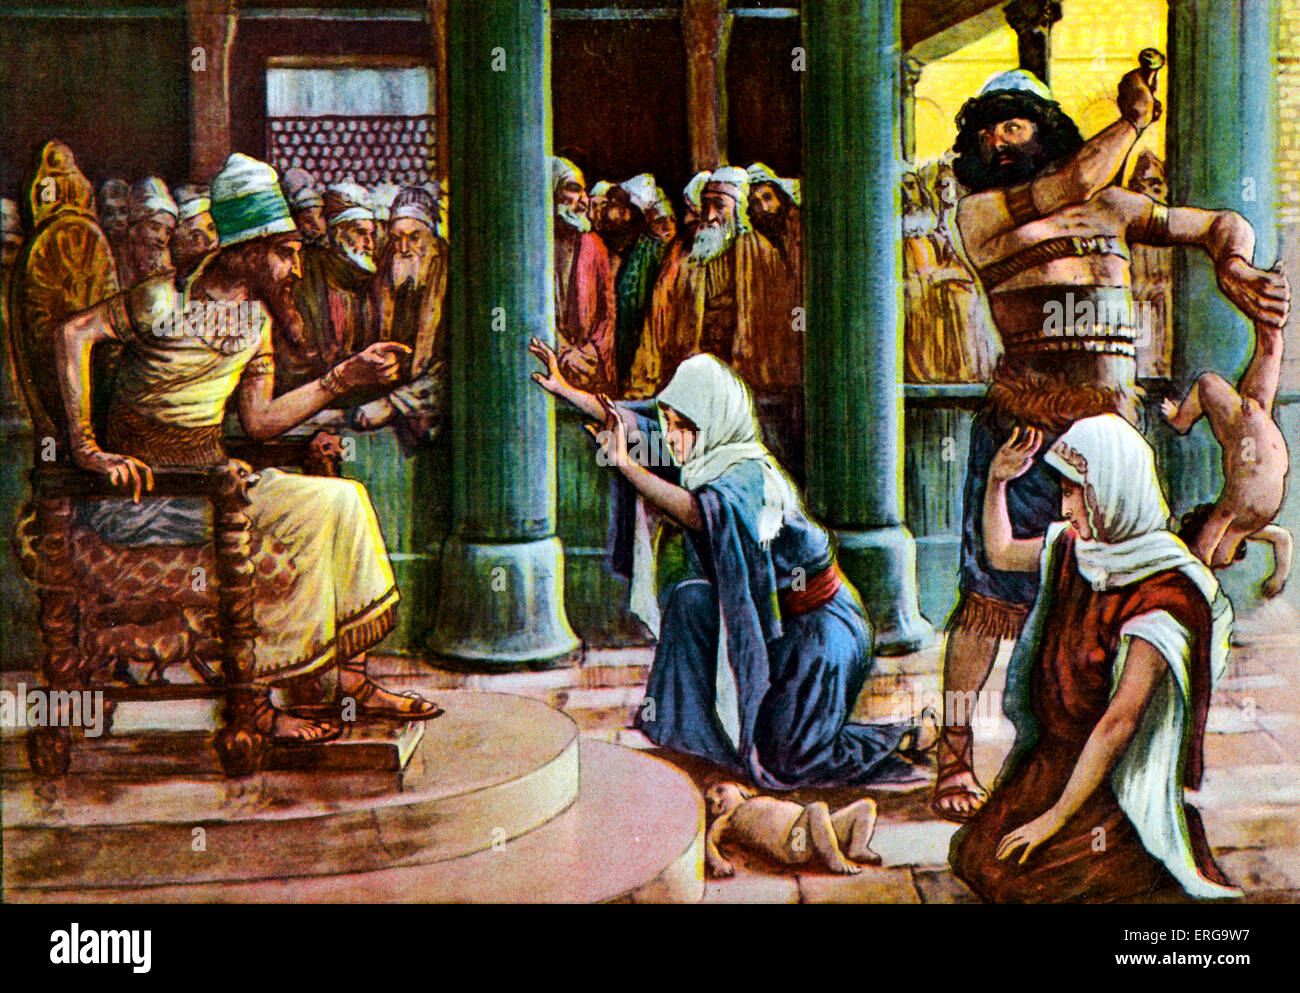 The Wisdom of Solomon  - after J James Tissot. Illustration of Book of Kings I, 3.27 : 'Then the king answered and Stock Photo